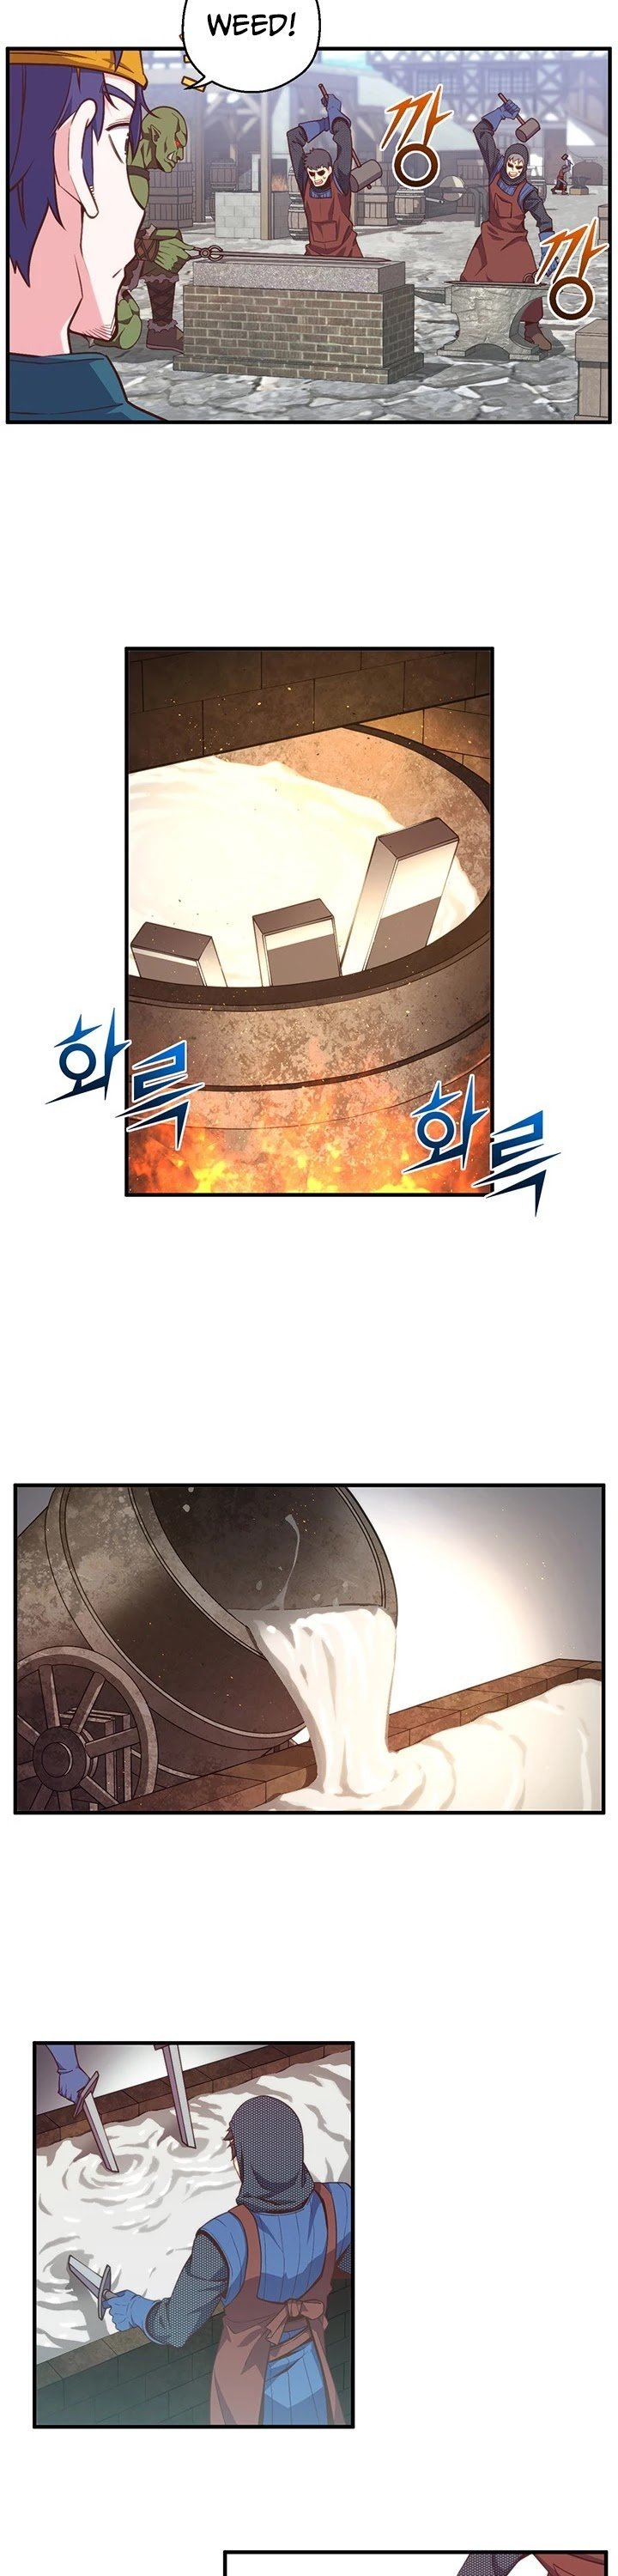 Manga The Legendary Moonlight Sculptor - Chapter 141 Page 11